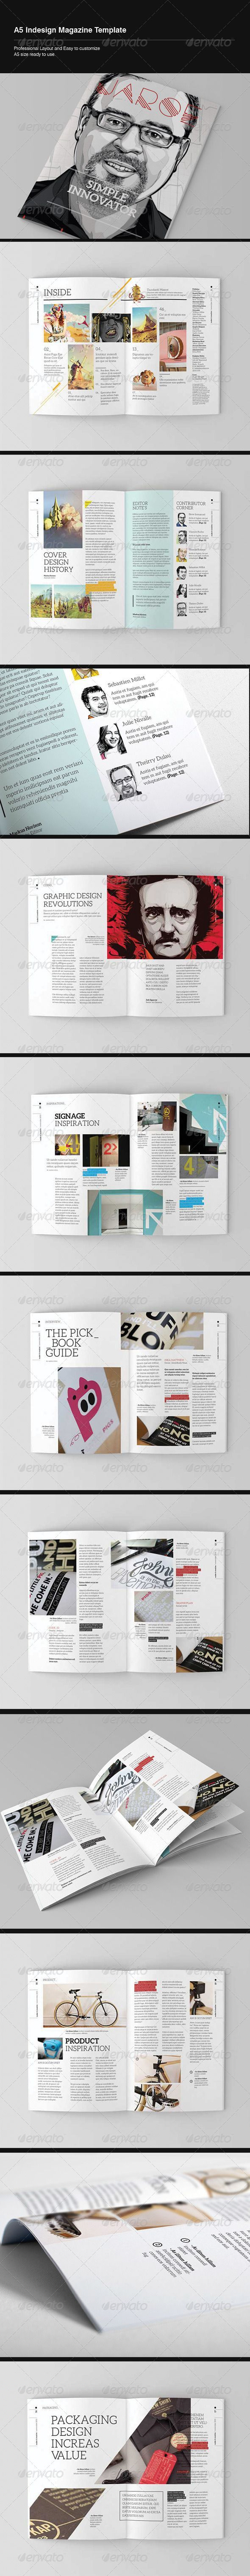 Best Download Template Magazine Indesign Images On